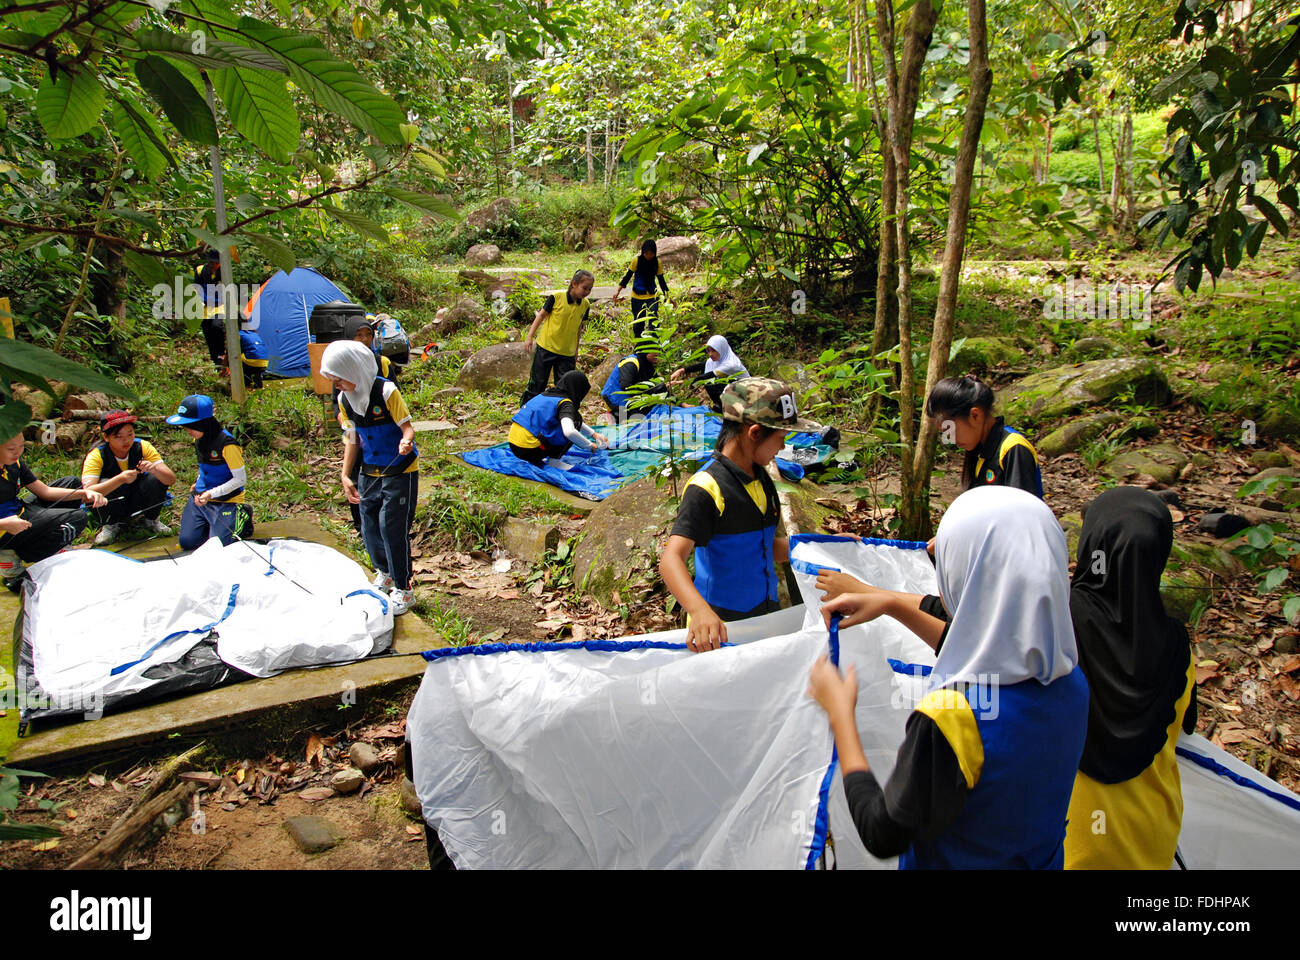 Kawang, Papar March 7, 2015 : A group of school girls working together pitching up tents for school extracurricular Stock Photo